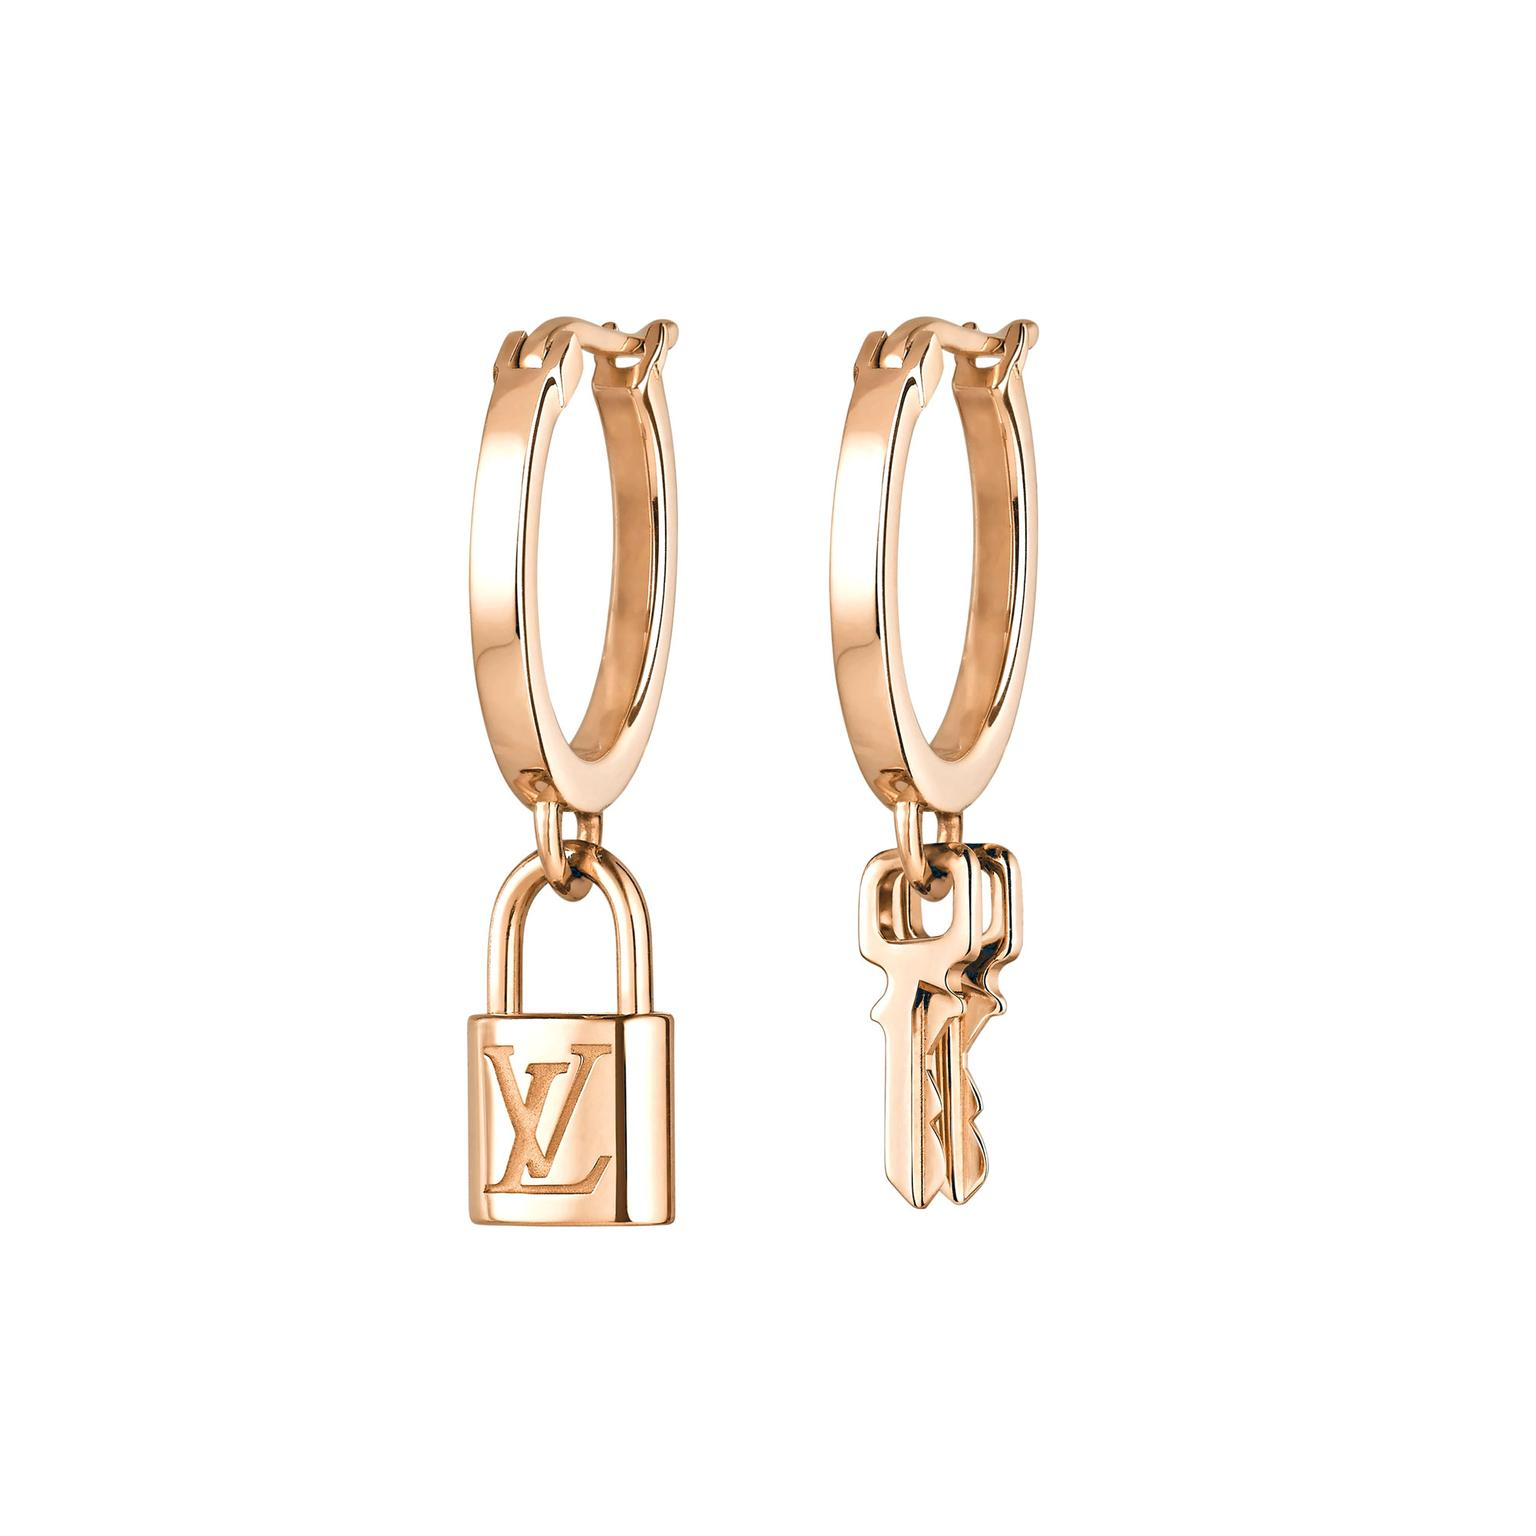 Louis Vuitton Lockit mismatched earrings